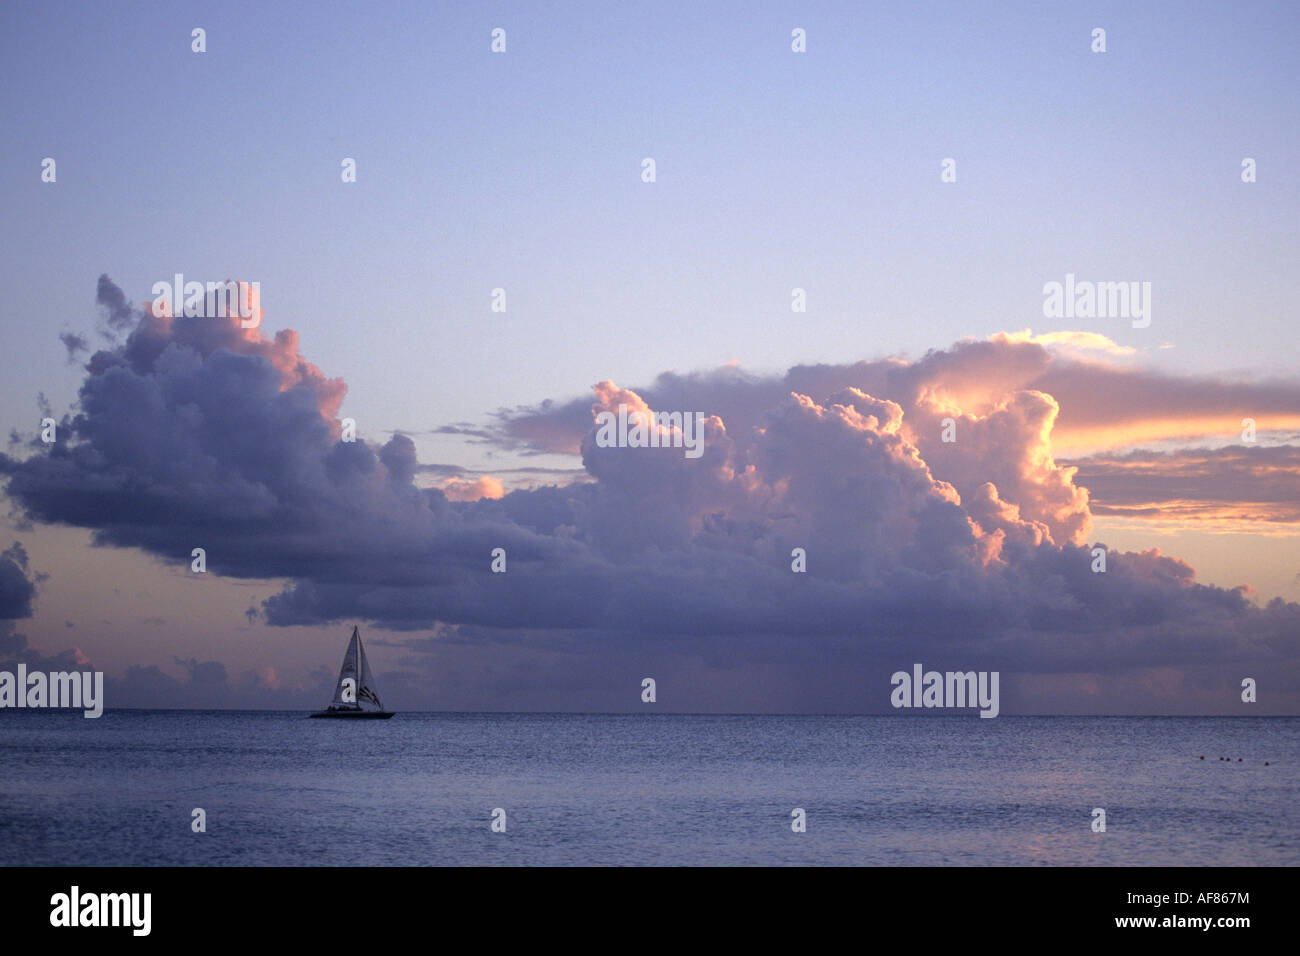 Catamaran at Sunset, View from Sandy Lane, St. James, Barbados, Carribean - Stock Image